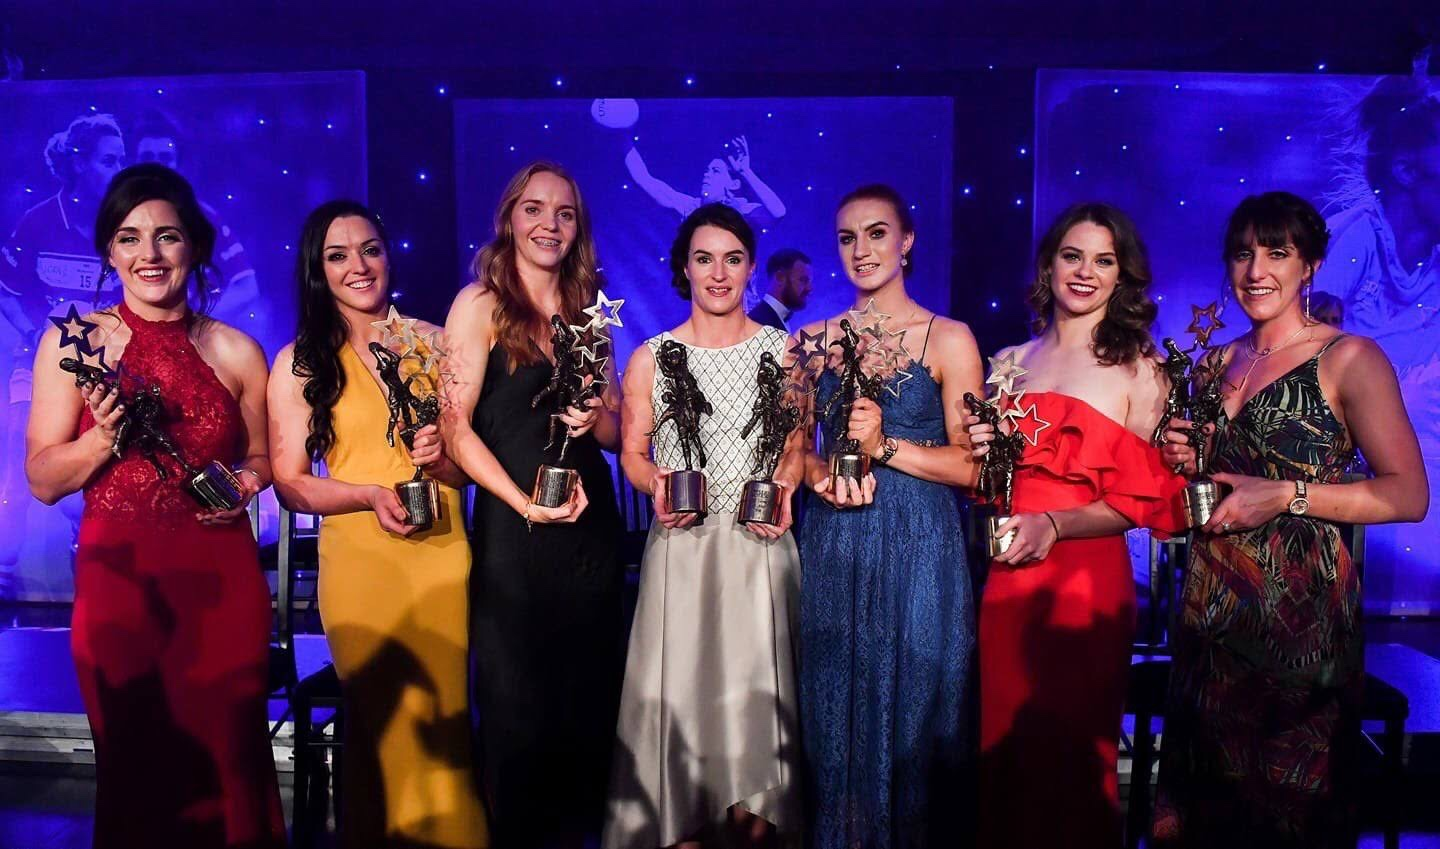 Seven Dublin Ladies footballers on stage with their All Star Awards at last years event, TG4 will once again broadcast Red Carpet Live from the 2019 All Stars Awards on their Facebook page.